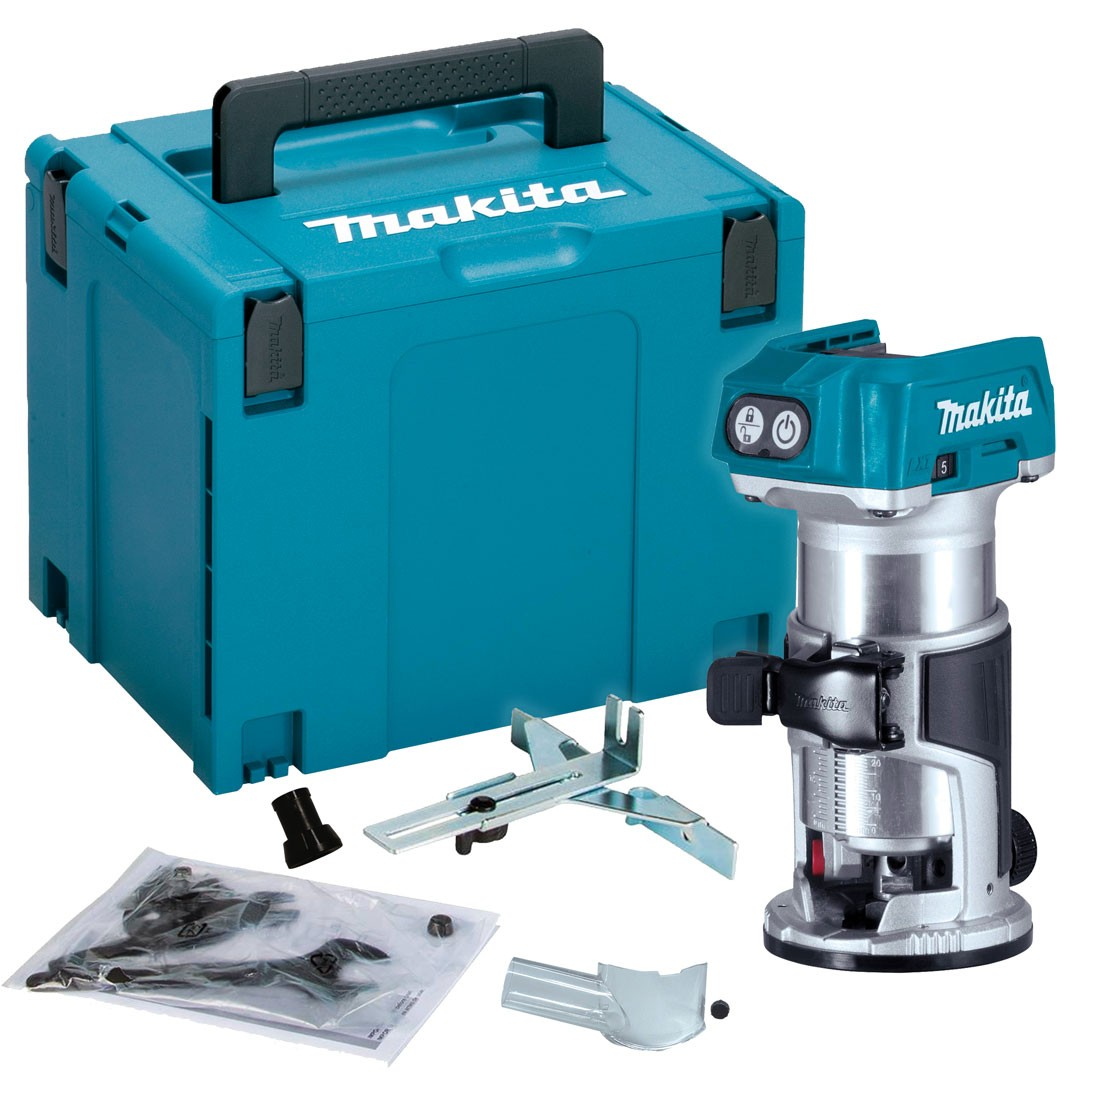 Makita DRT50ZJ Cordless Router Laminate Trimmer Body Only in Makpac Case | Powertool World